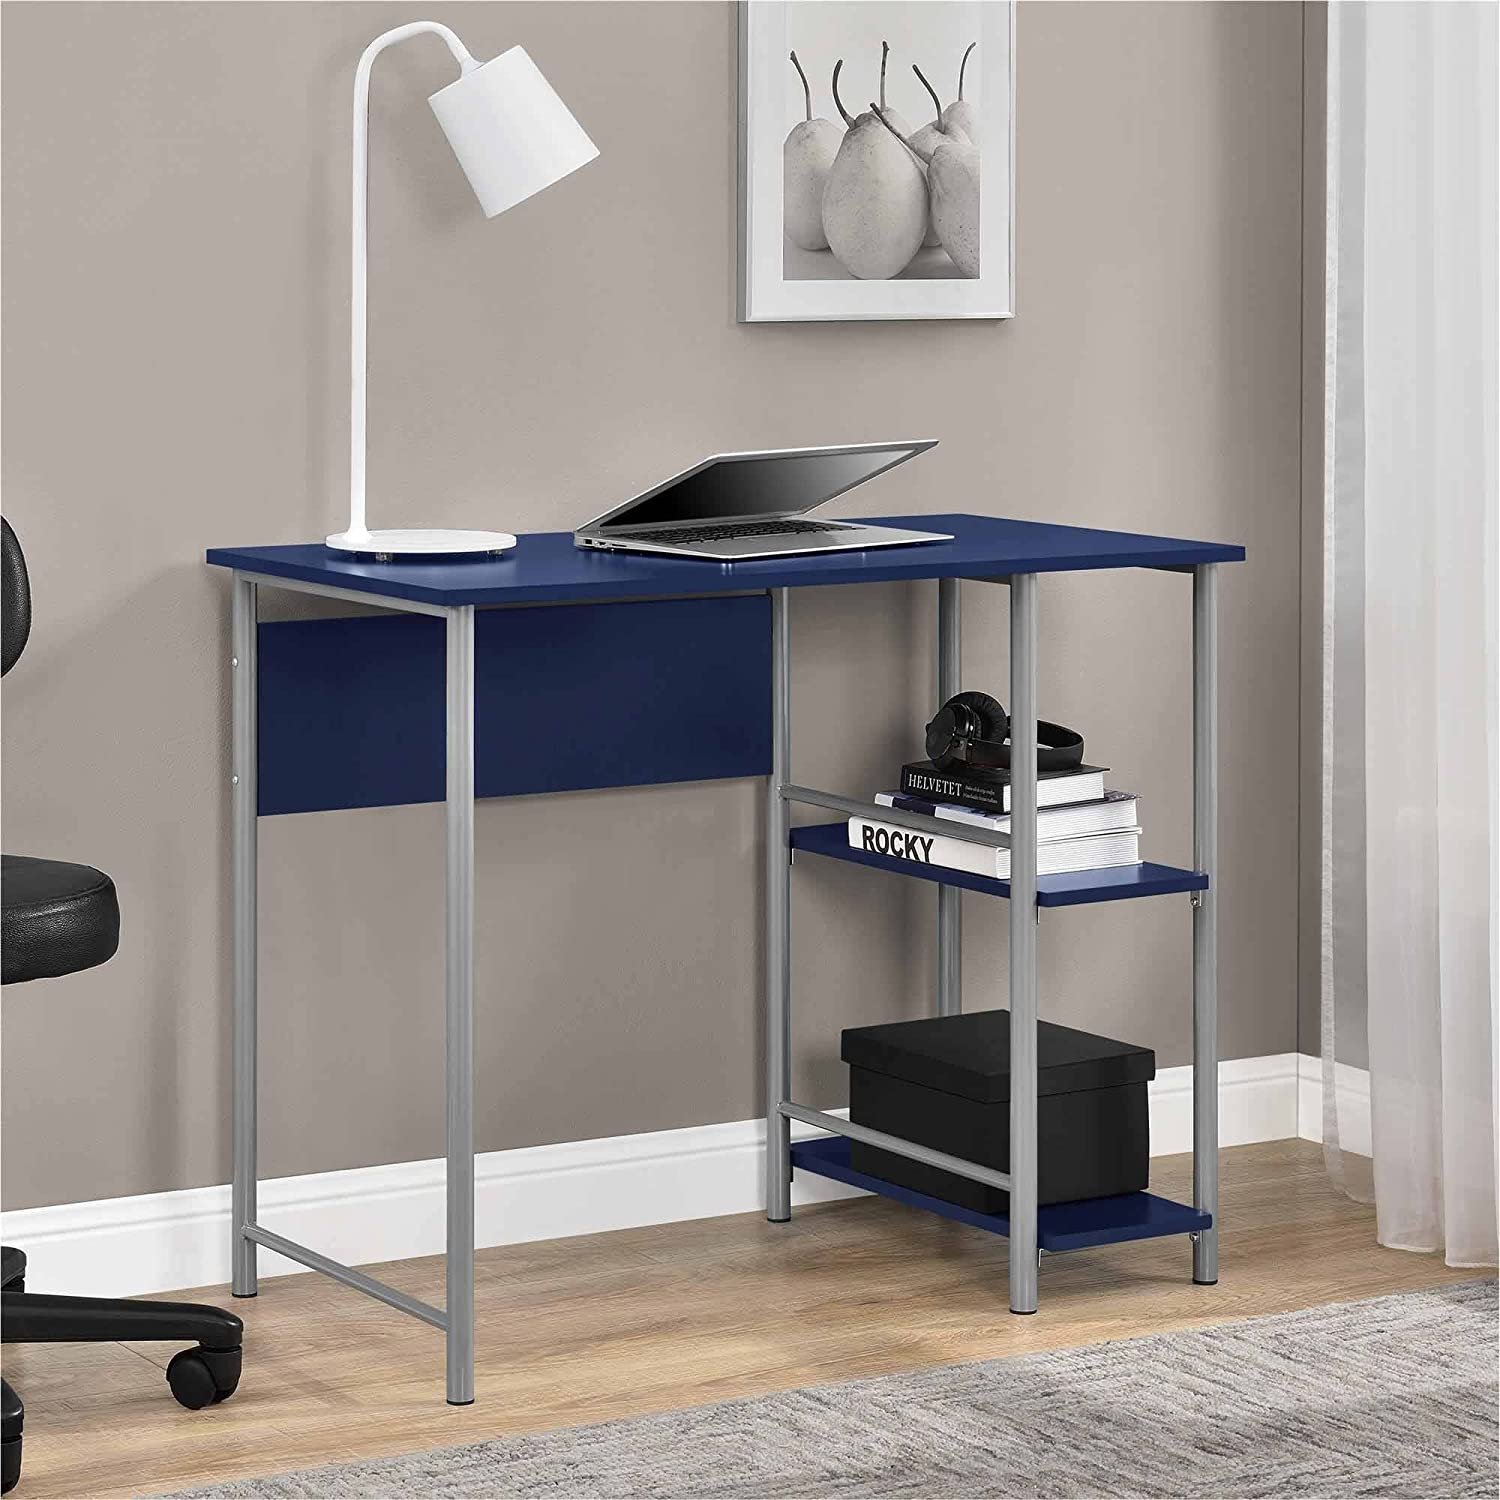 student luxury home best multiple inspirational and metal desk georgiabraintrain com colors ideas fice of walmart for computer desks mainstays design at basic